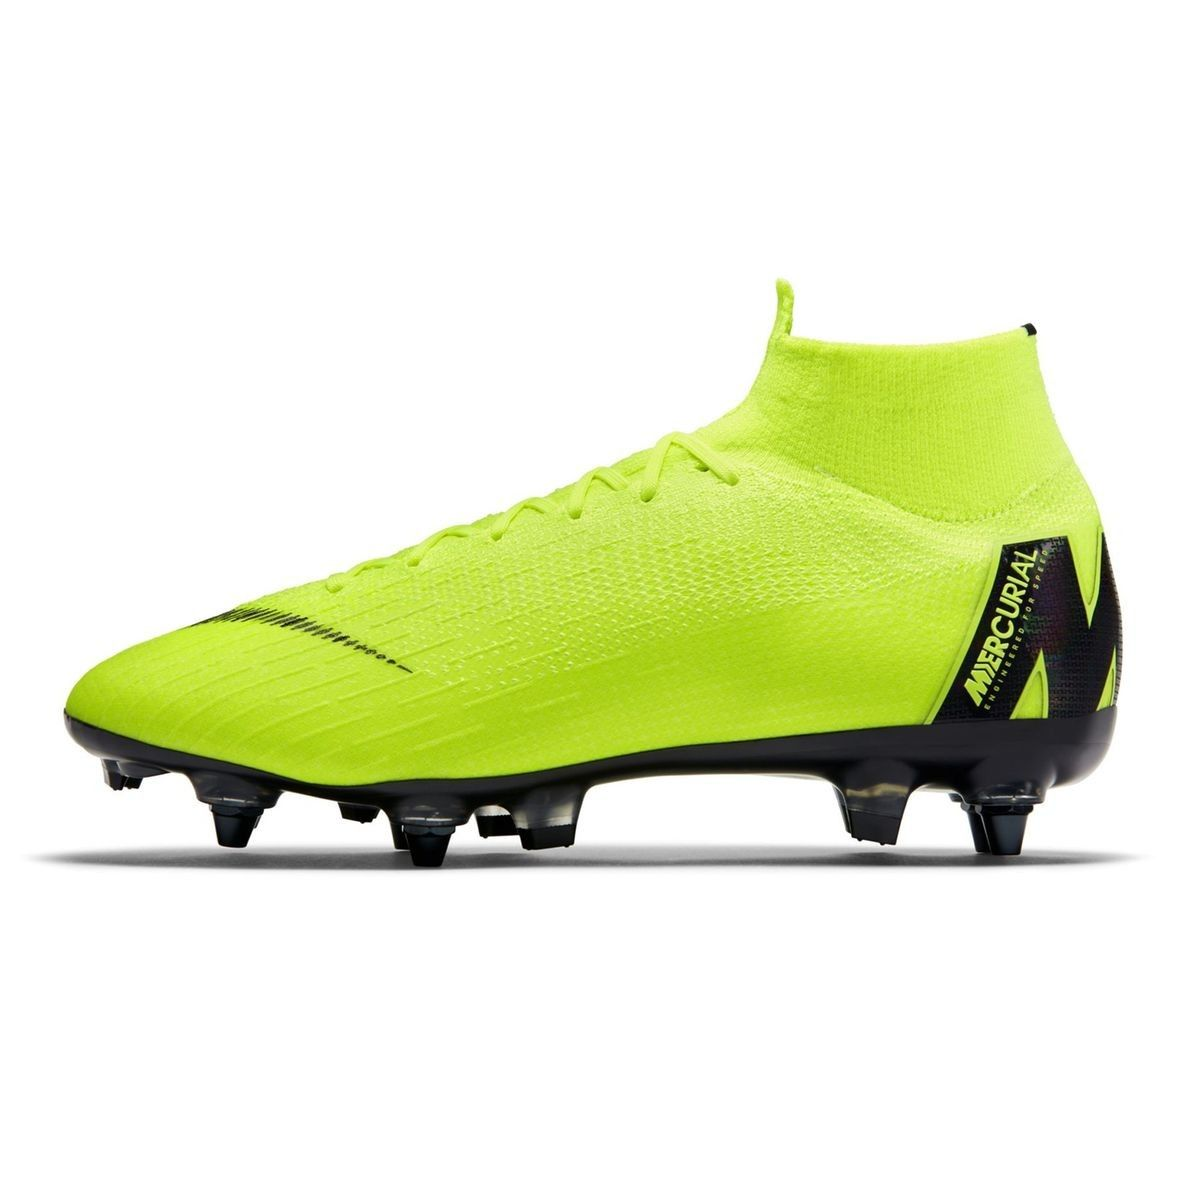 Chaussures Football Nike Mercurial Superfly 360 Vi Elite Sg